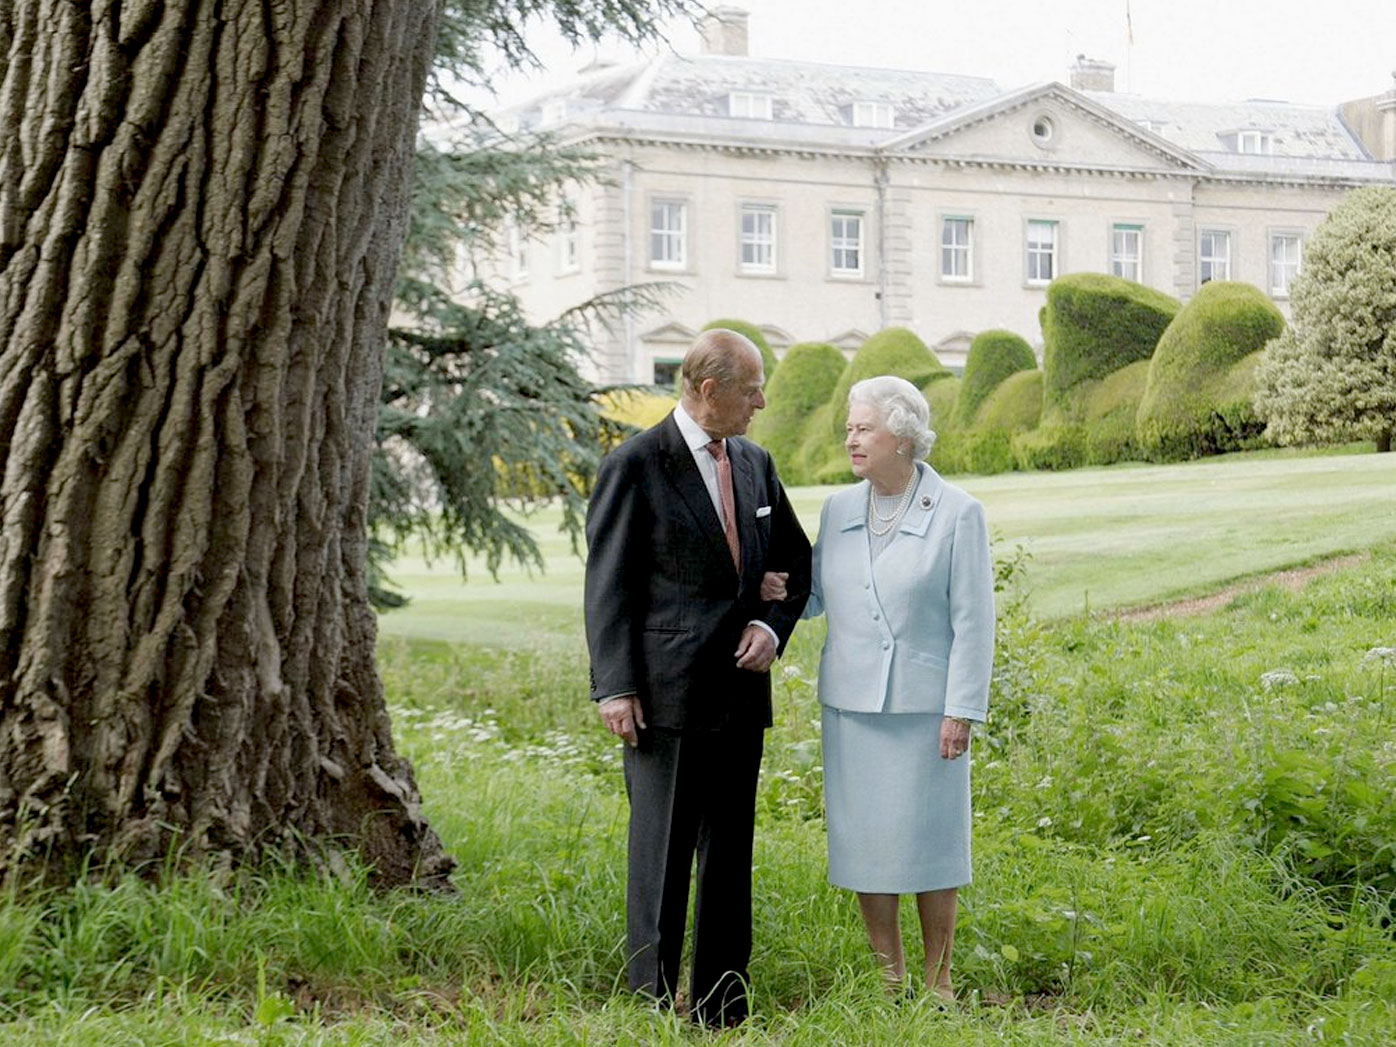 Prince Philip retires from official duty